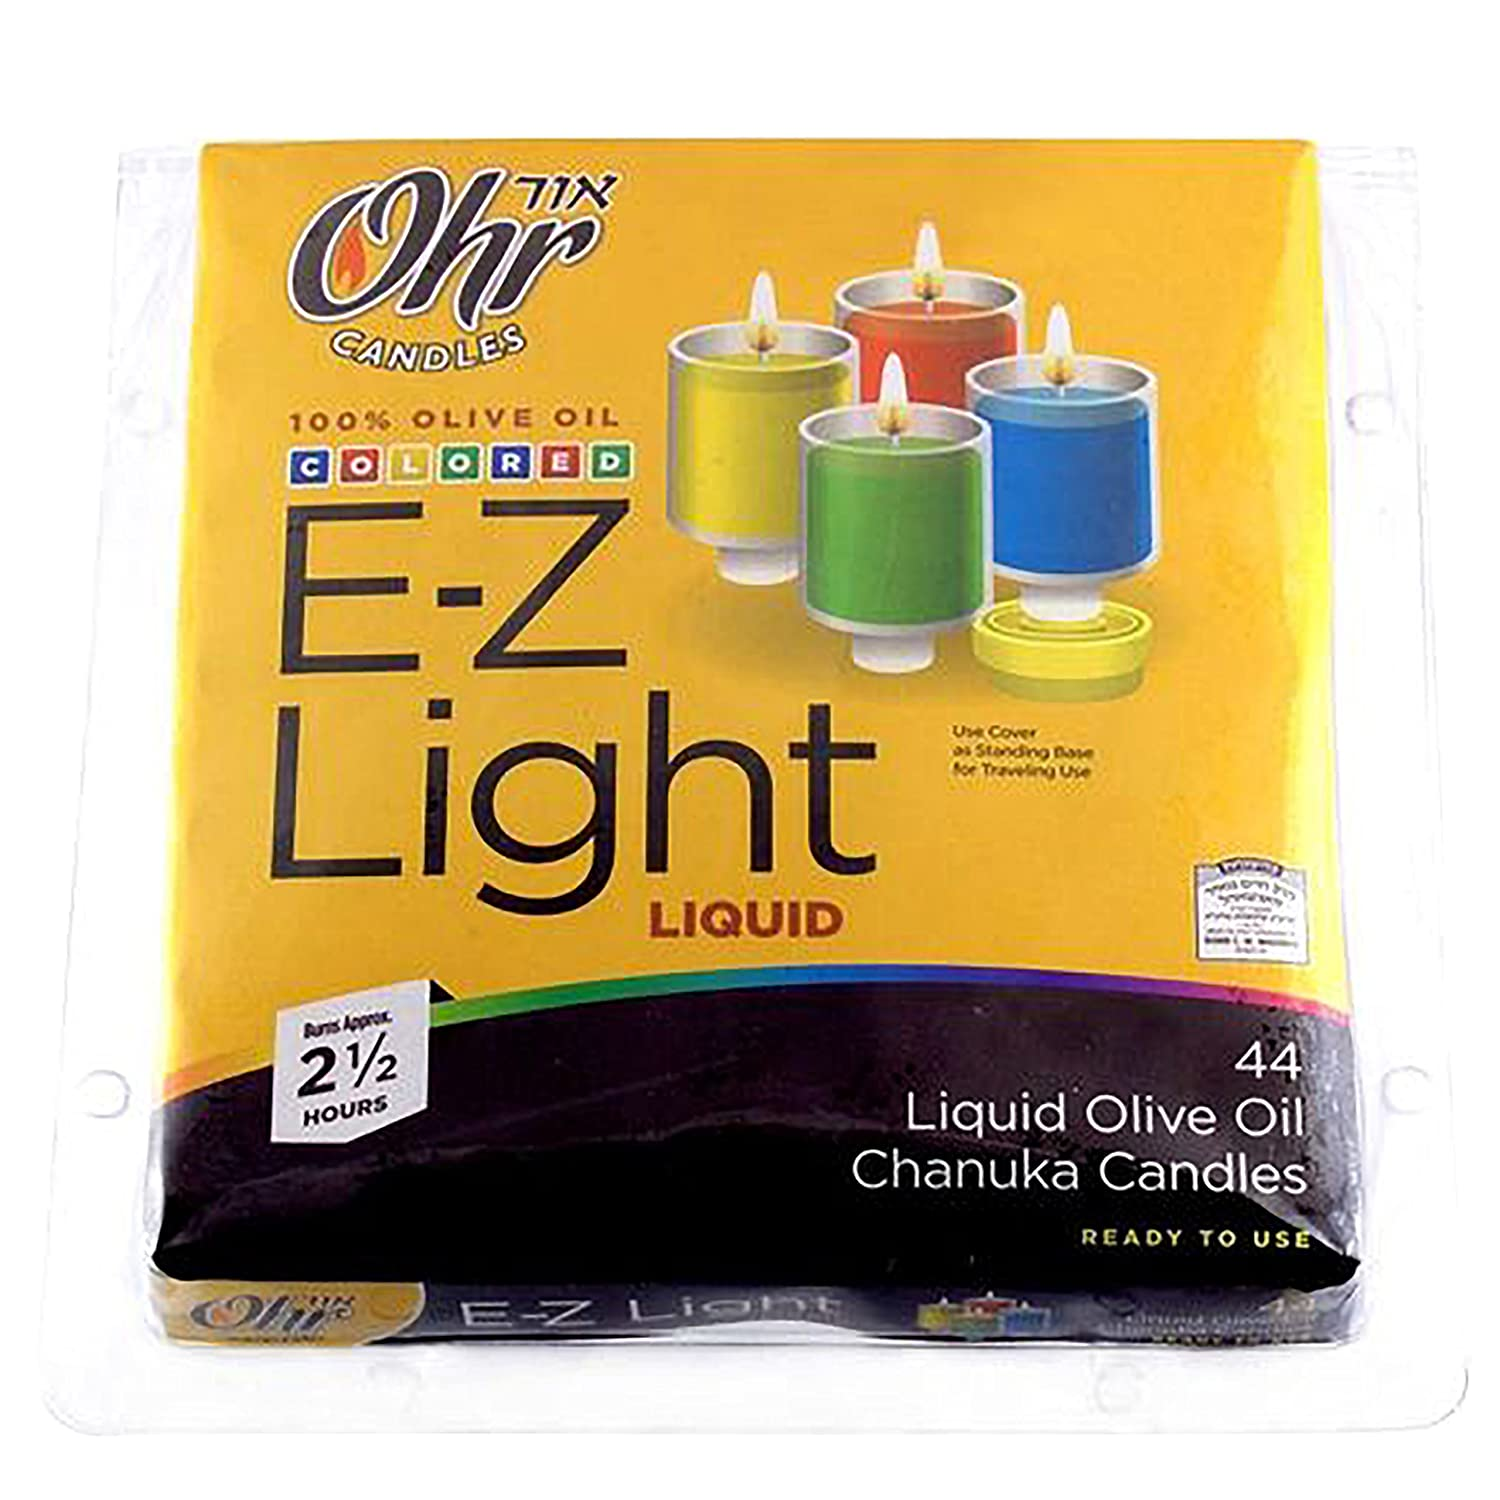 Pre-Filled Colored Menorah Oil Cup Candles - Hanukkah EZ Lights - 100% Olive Oil with Cotton Wick in Plastic Cup - Medium Size, 44 per Pack, Burns Approx. 2 1/2 Hrs Ner Mitzvah